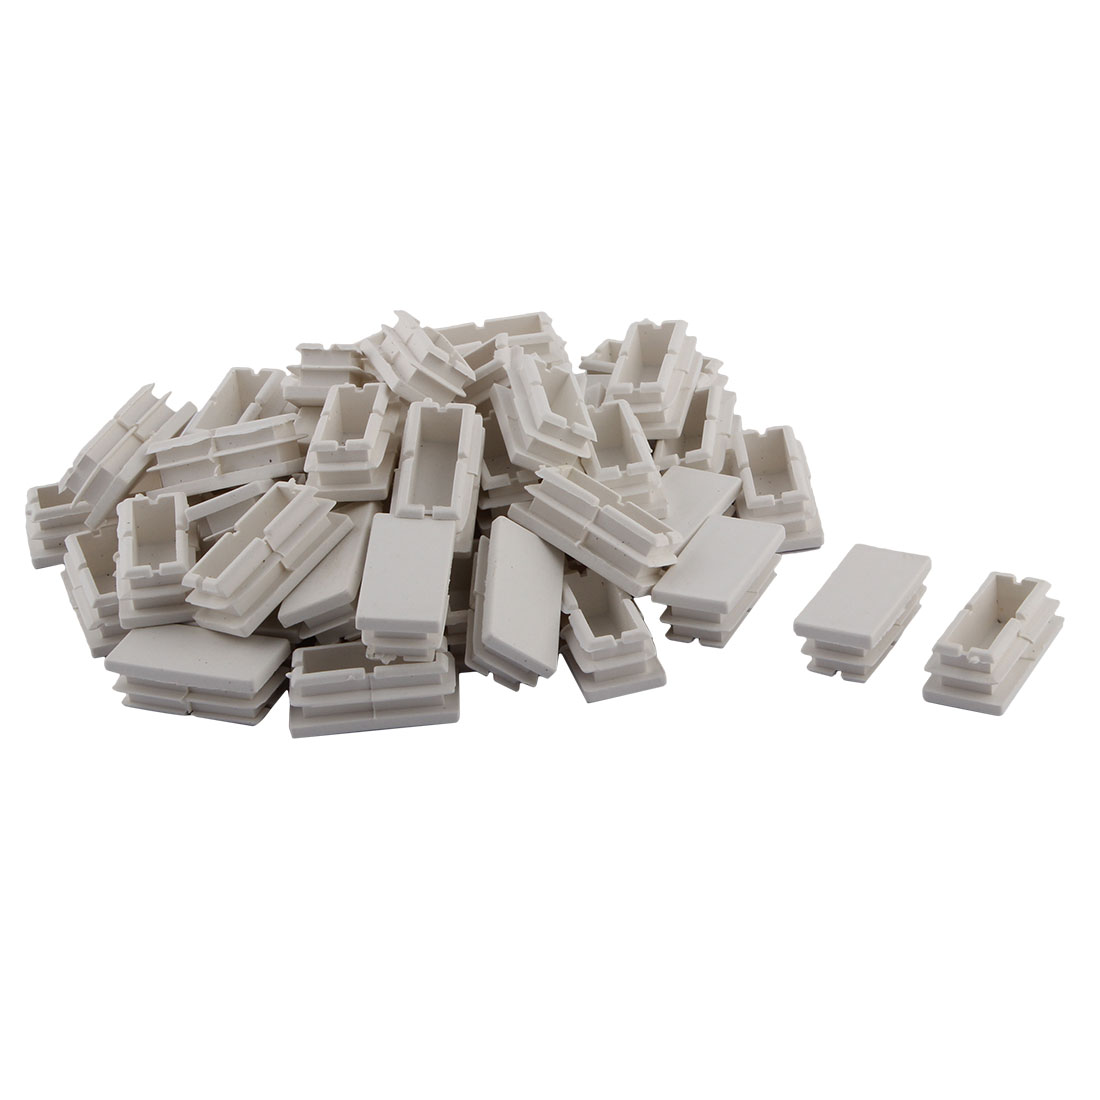 Household Plastic Rectangular Shaped Chair Leg Tube Pipe Insert White 40 x 20mm 50 PCS